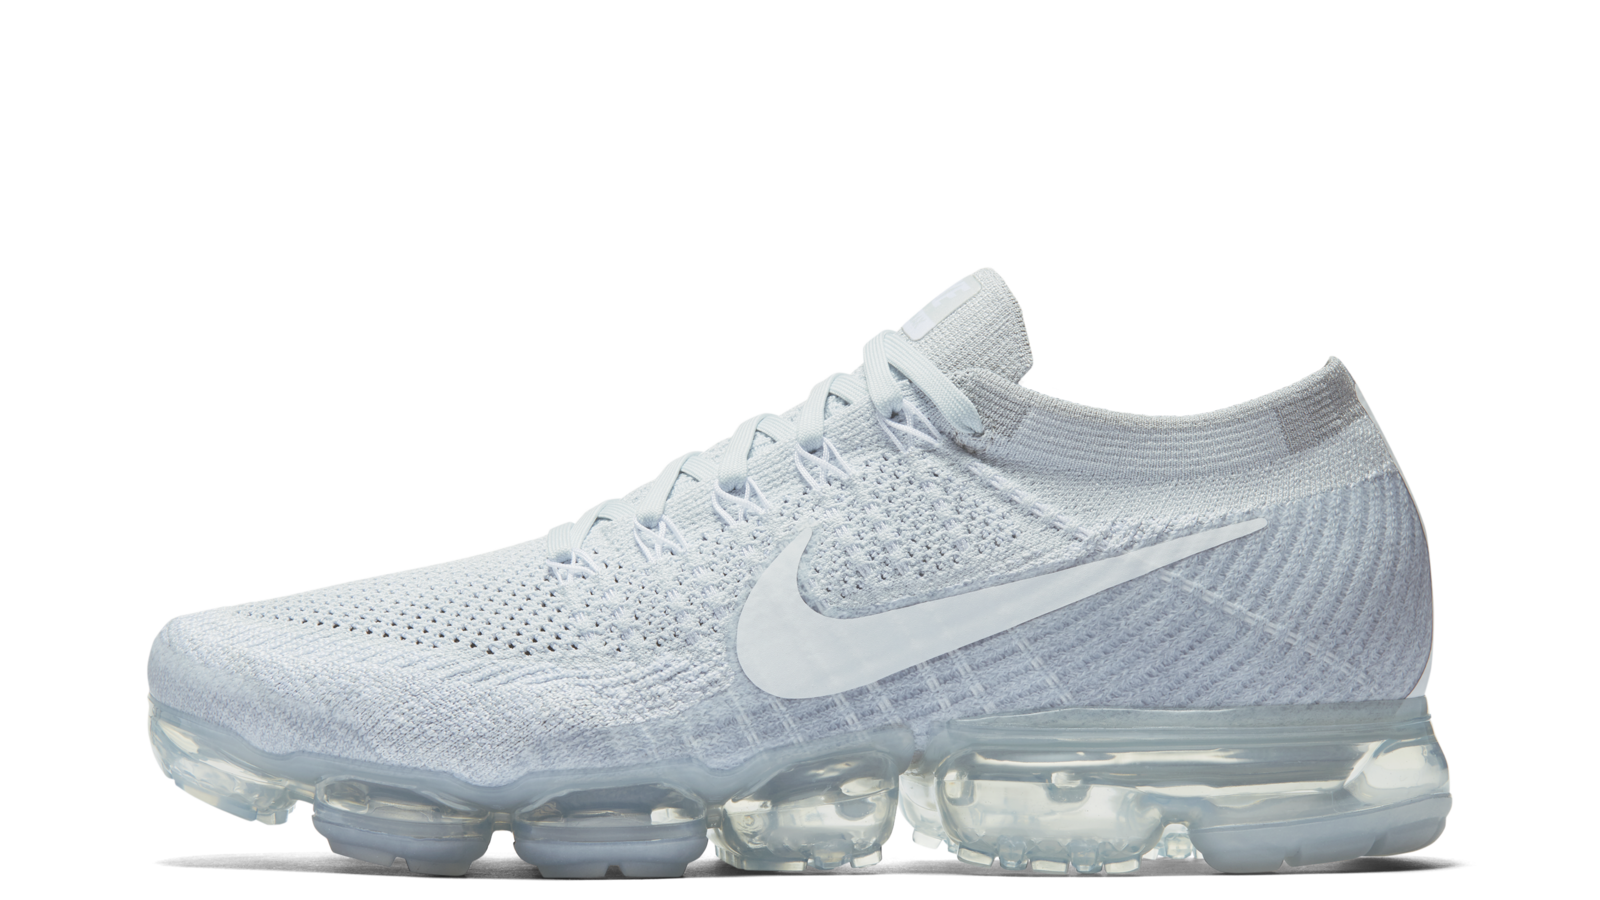 cc1624bf9eb Nike Air VaporMax Reveals the Pinnacle of Air - Nike News